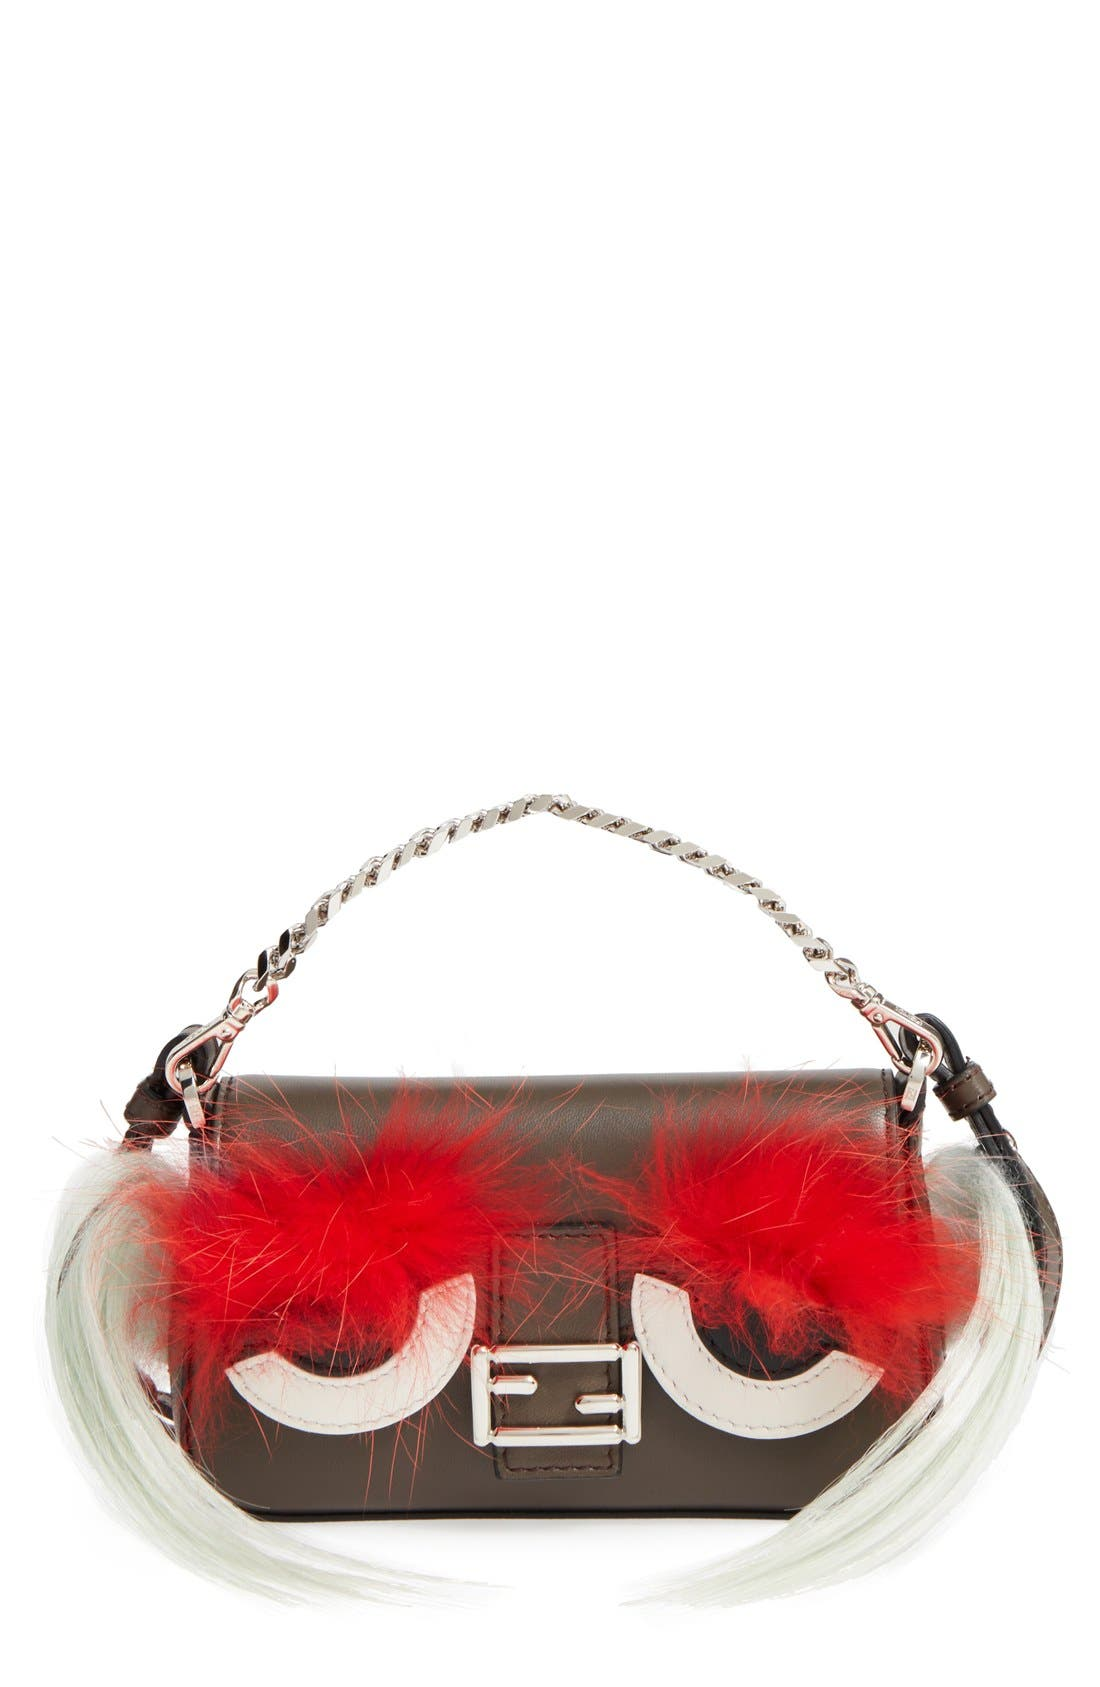 Fendi 'Micro Monster' Lambskin Leather, Genuine Fox Fur & Genuine Kidassia Goat Fur Baguette